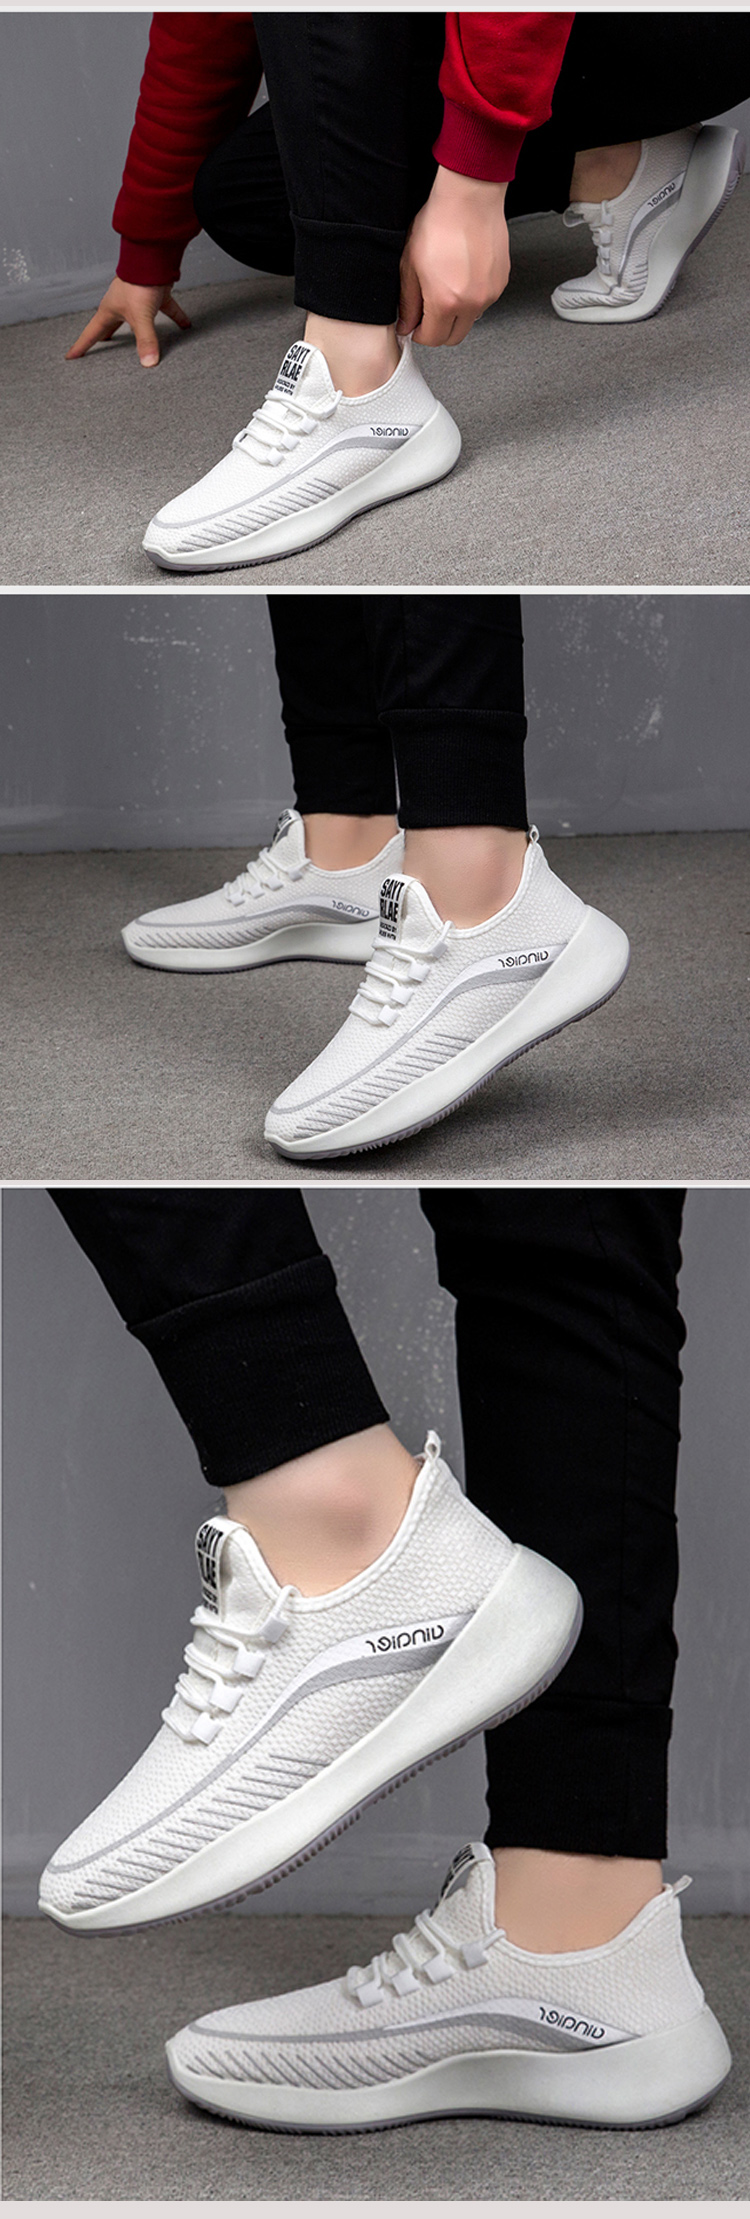 China factory white breathable custom outdoor sports sneakers men casual shoes